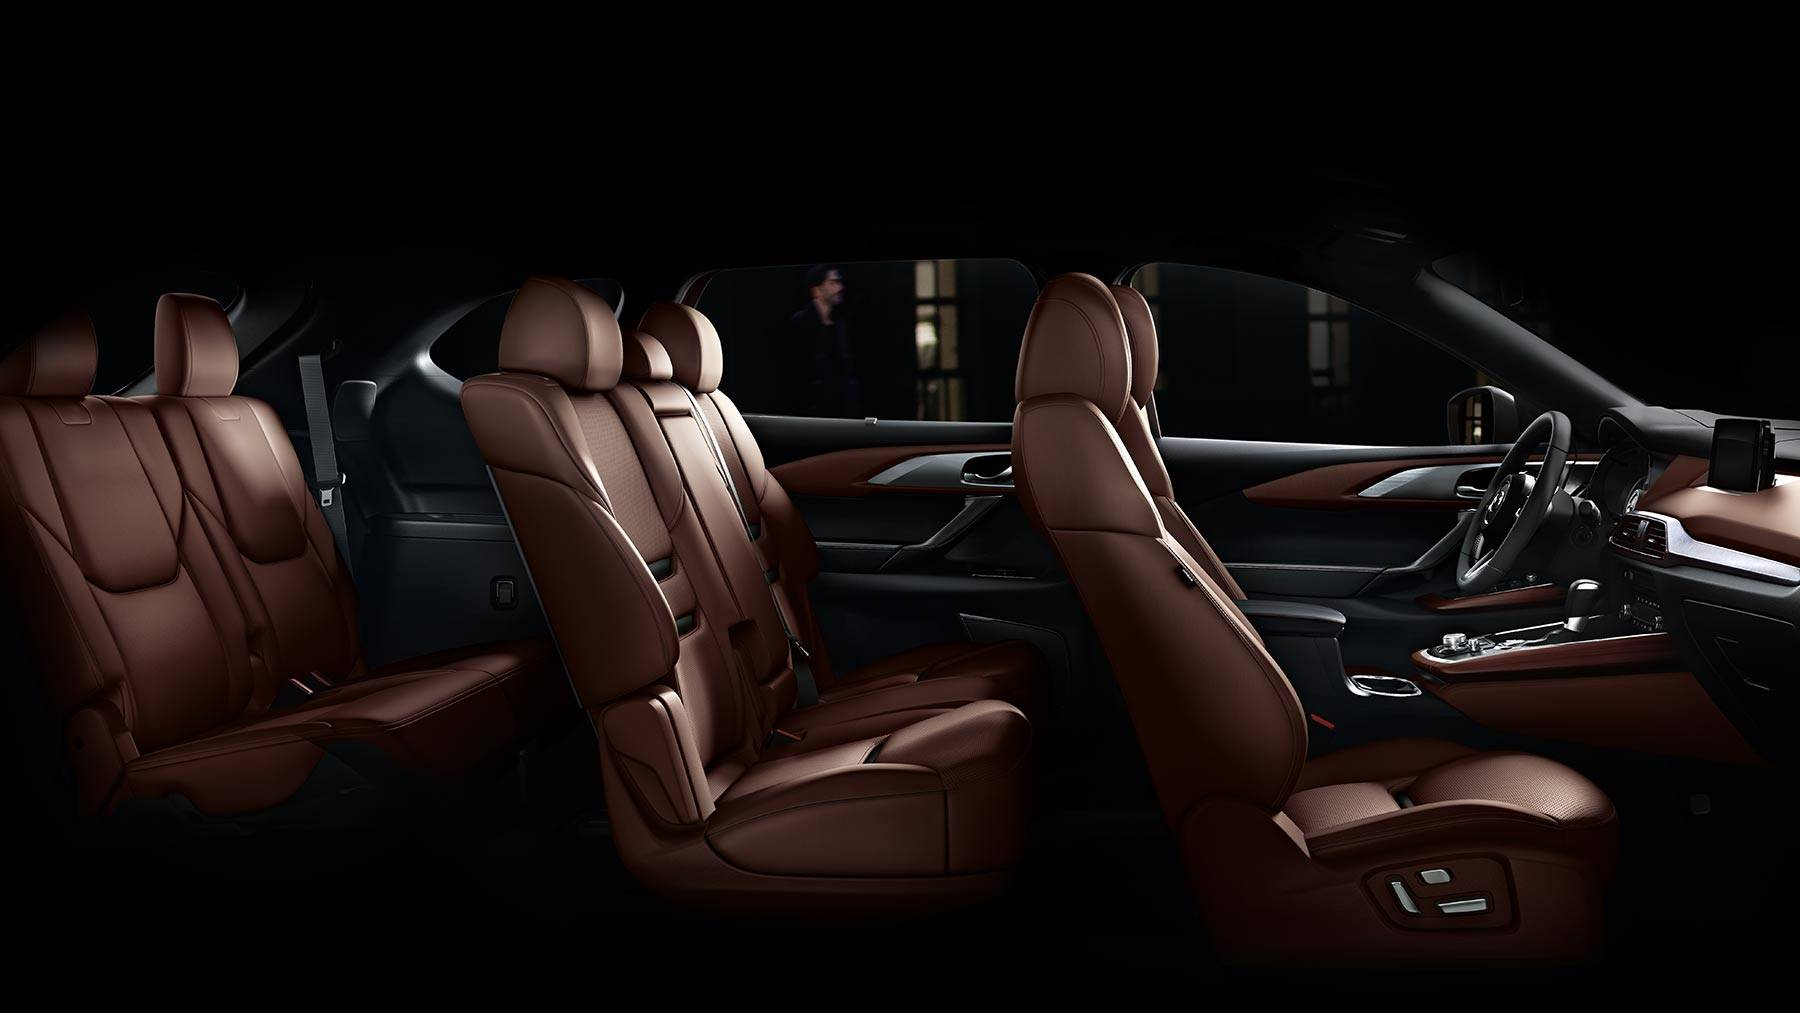 Safety Surrounds You in the 2019 Mazda CX-9